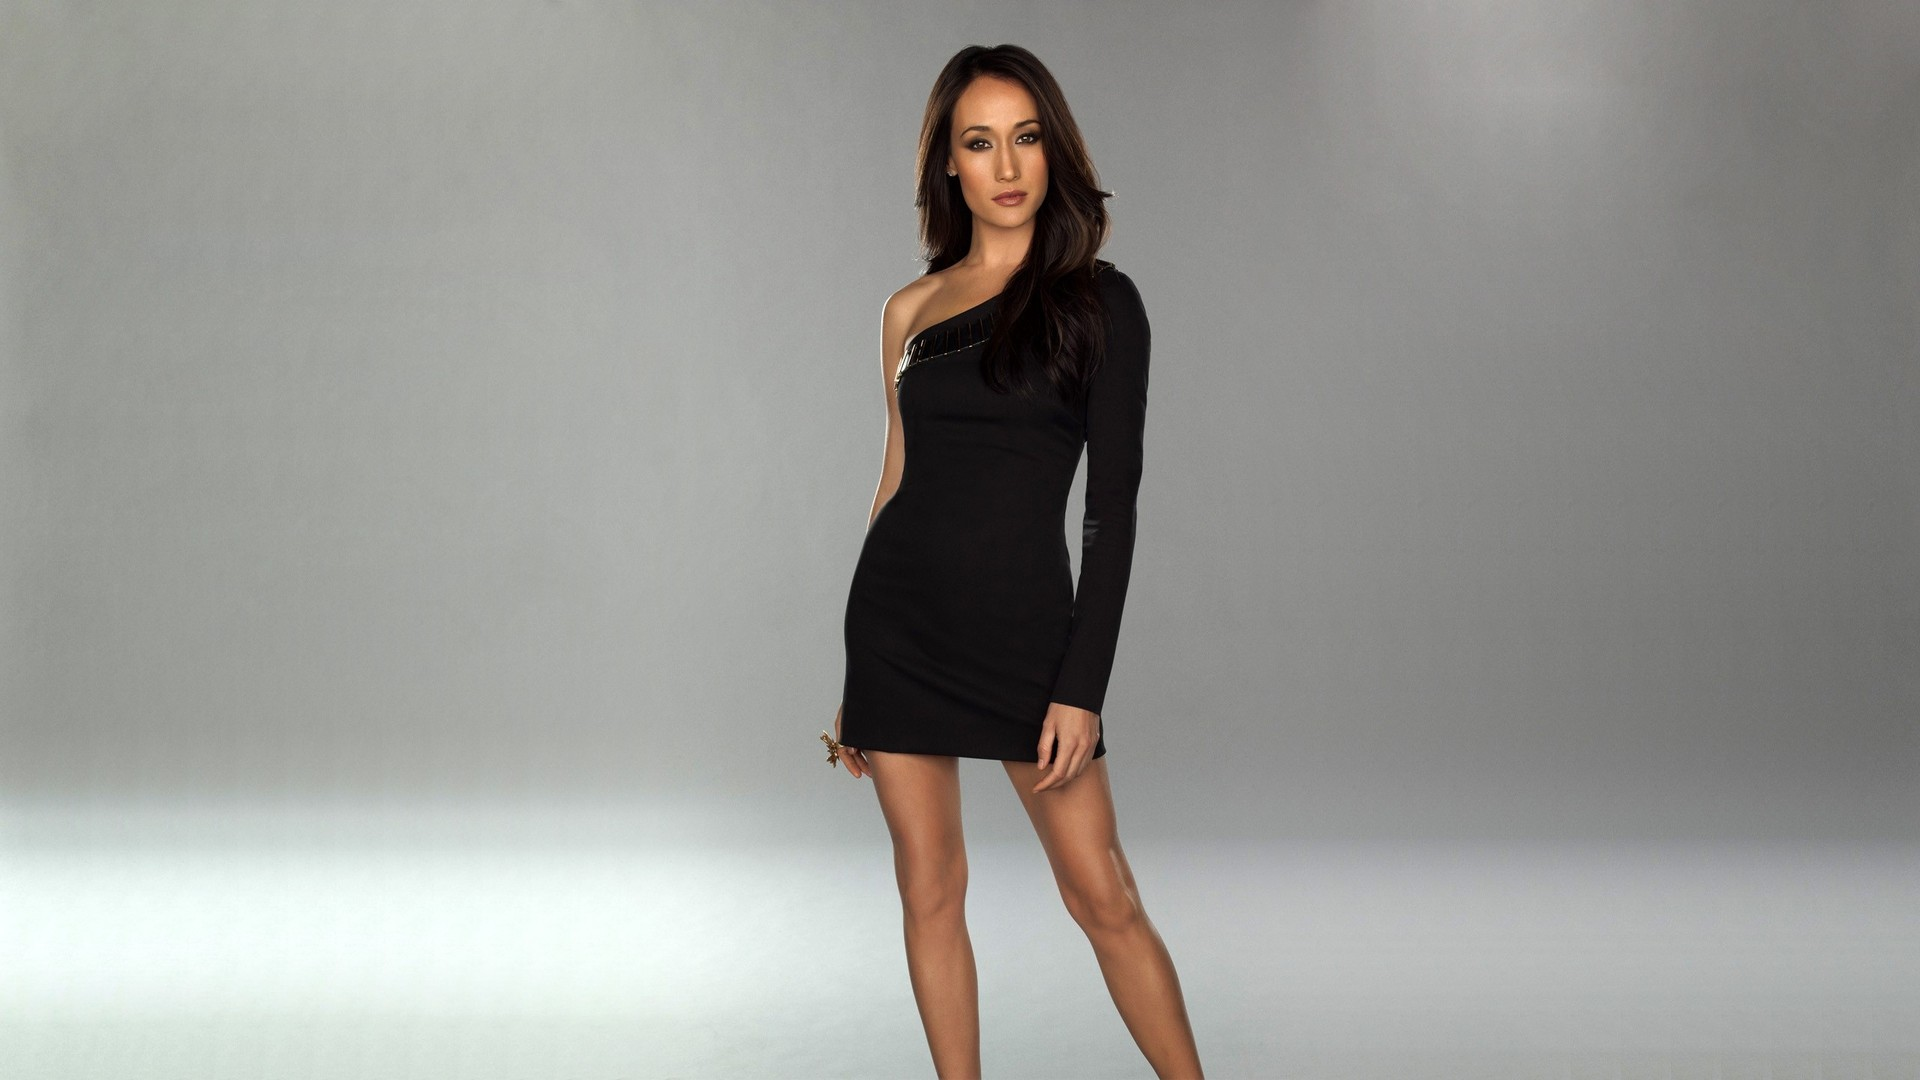 1920x1080 - Maggie Q Wallpapers 21